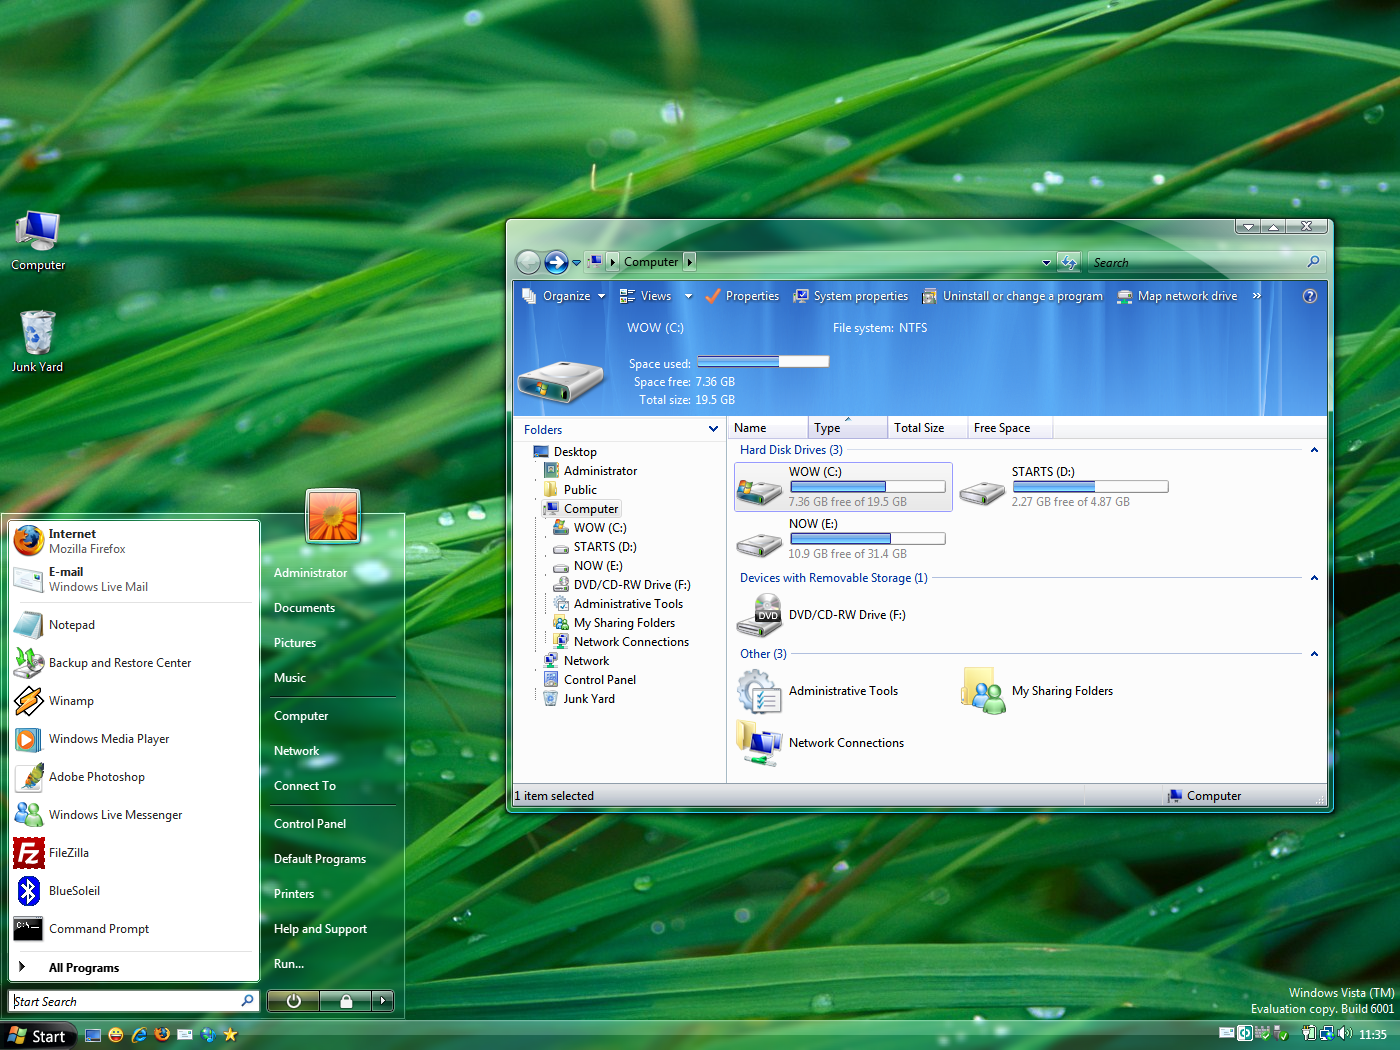 AeroVG Theme for Windows Vista